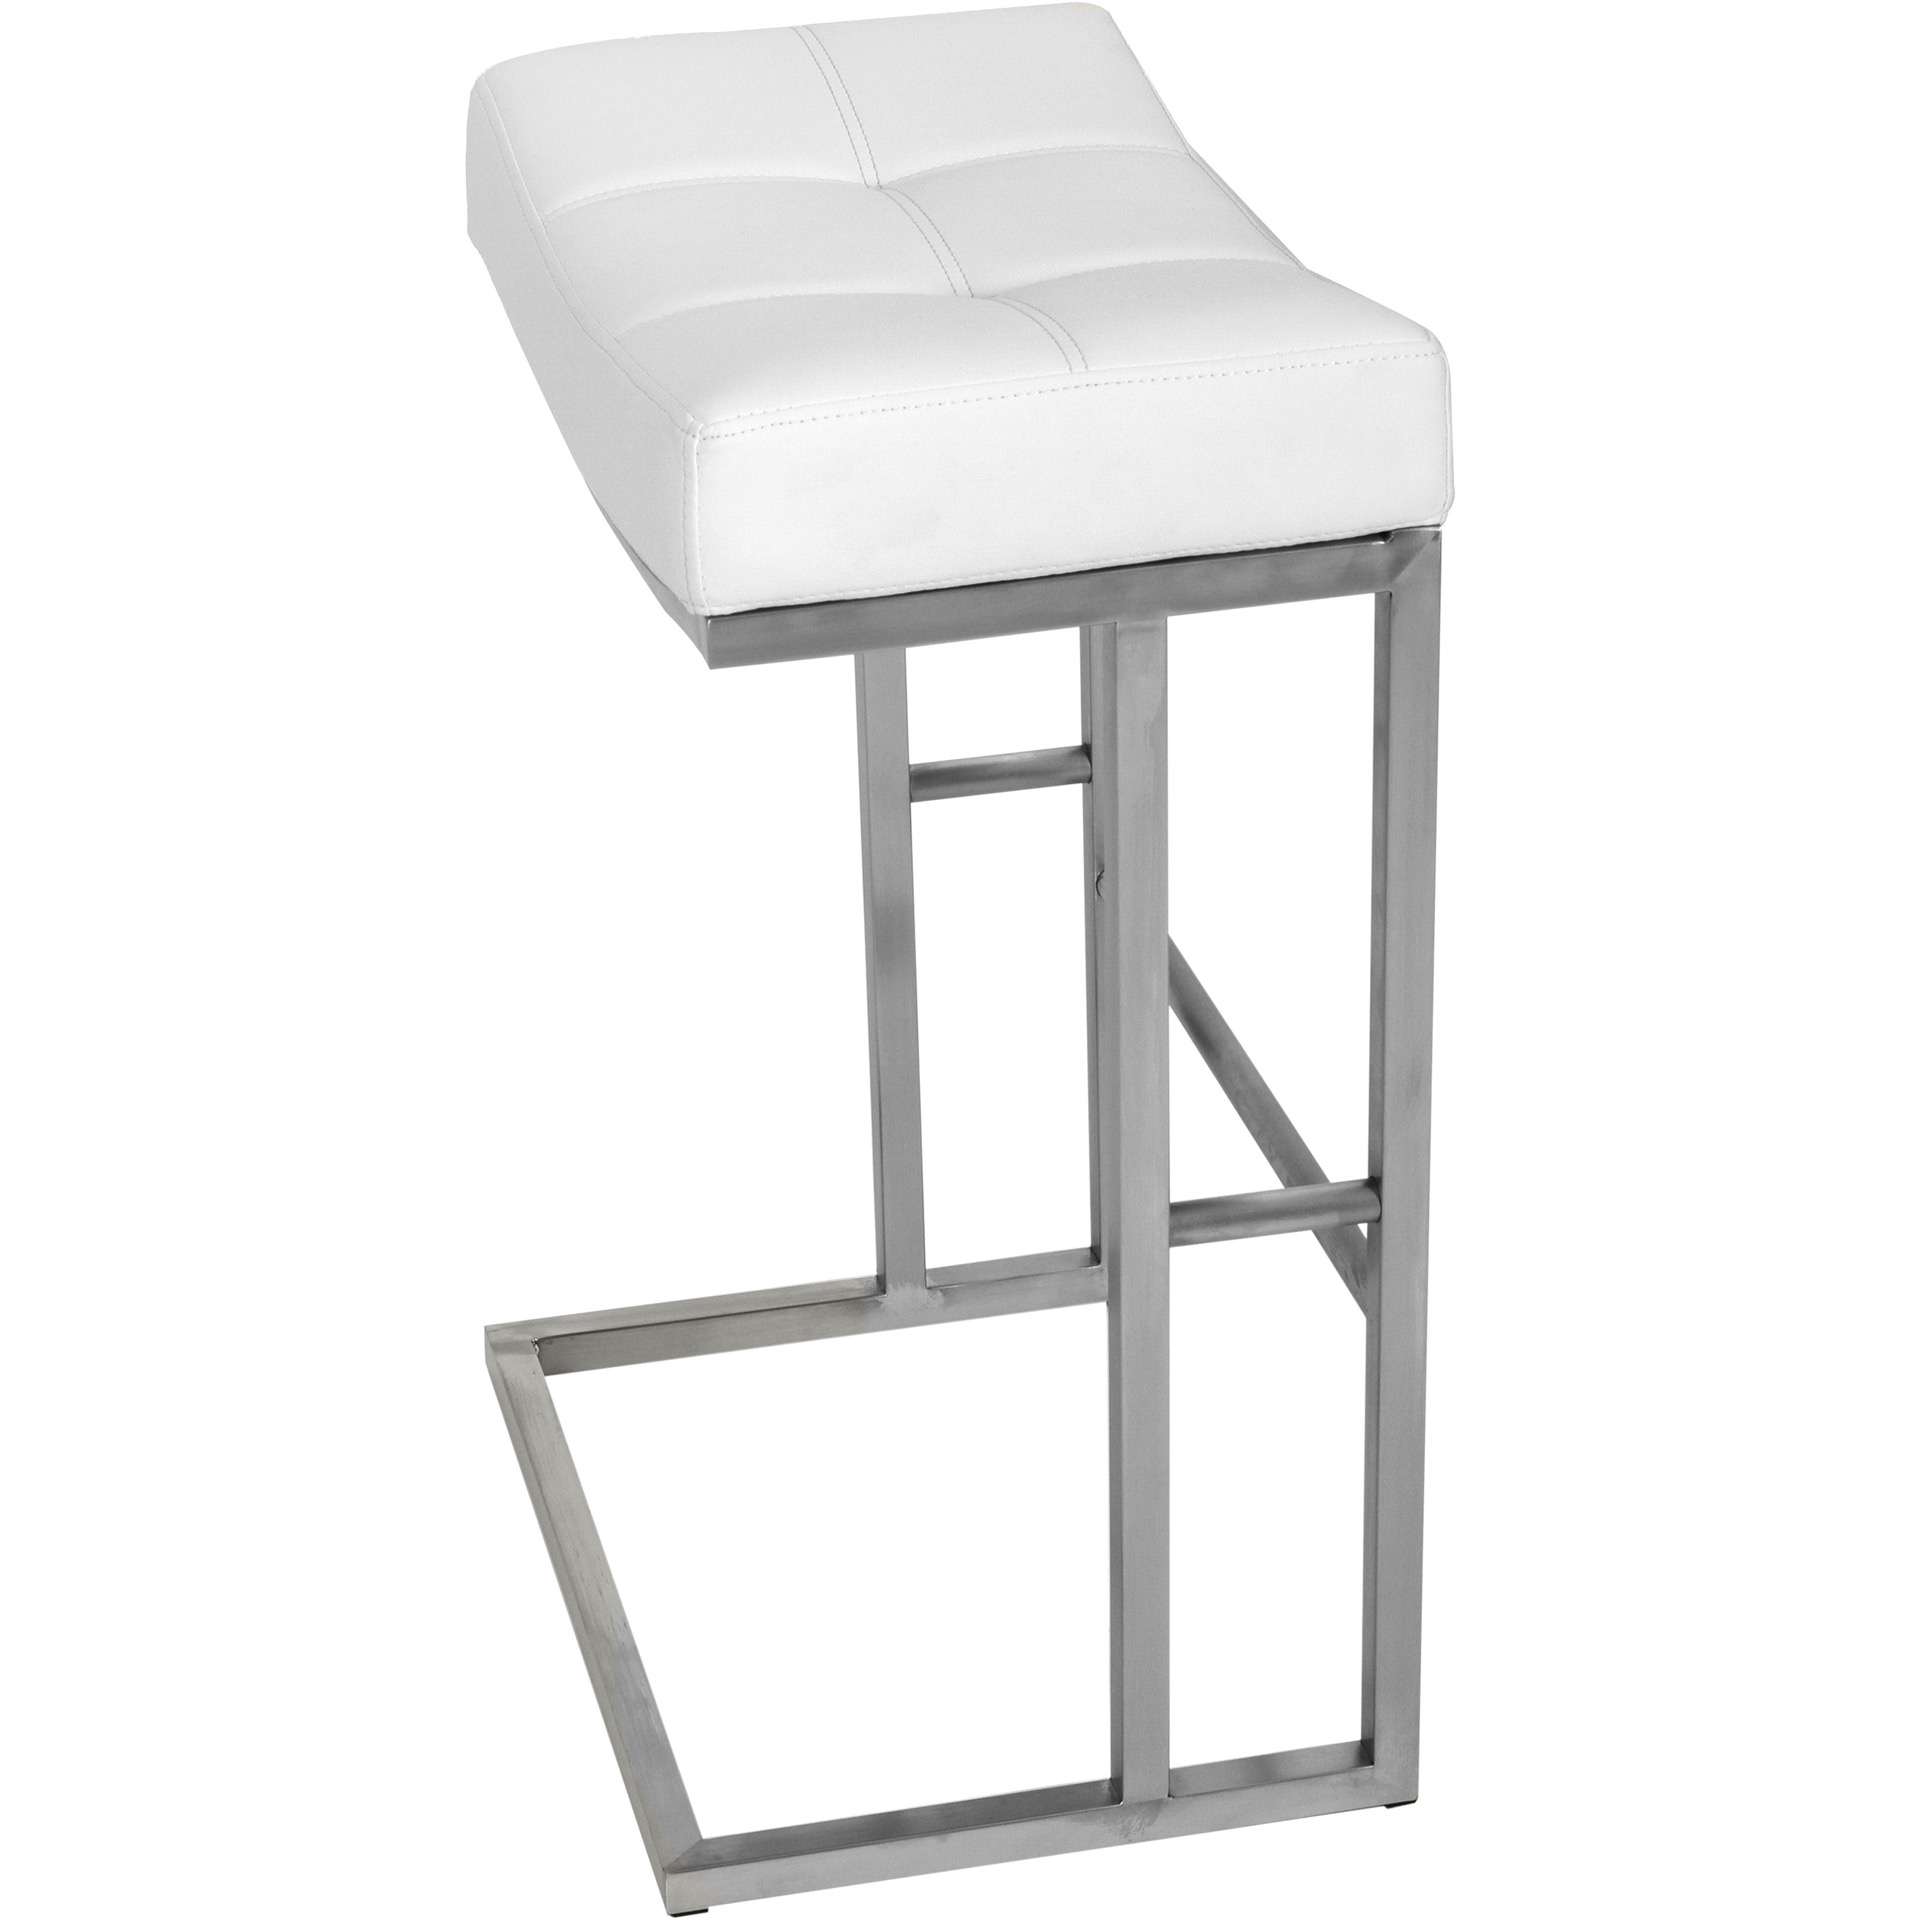 Incredible Matrix Imports Solis Stainless Saddle Backless Alfa Barstools Machost Co Dining Chair Design Ideas Machostcouk